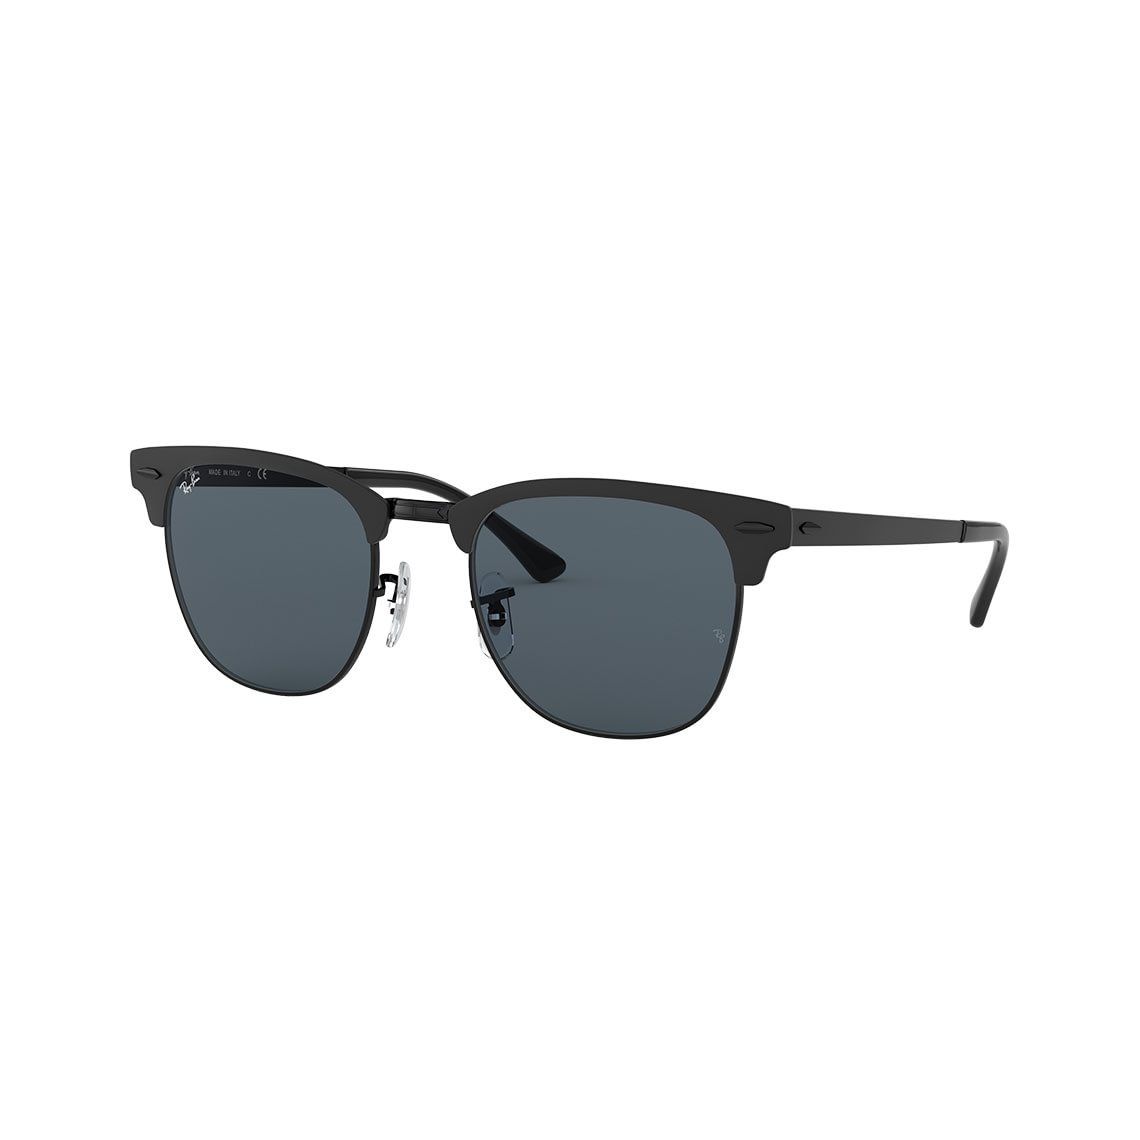 Ray-Ban Clubmaster Metal RB3716 186/R5 5121